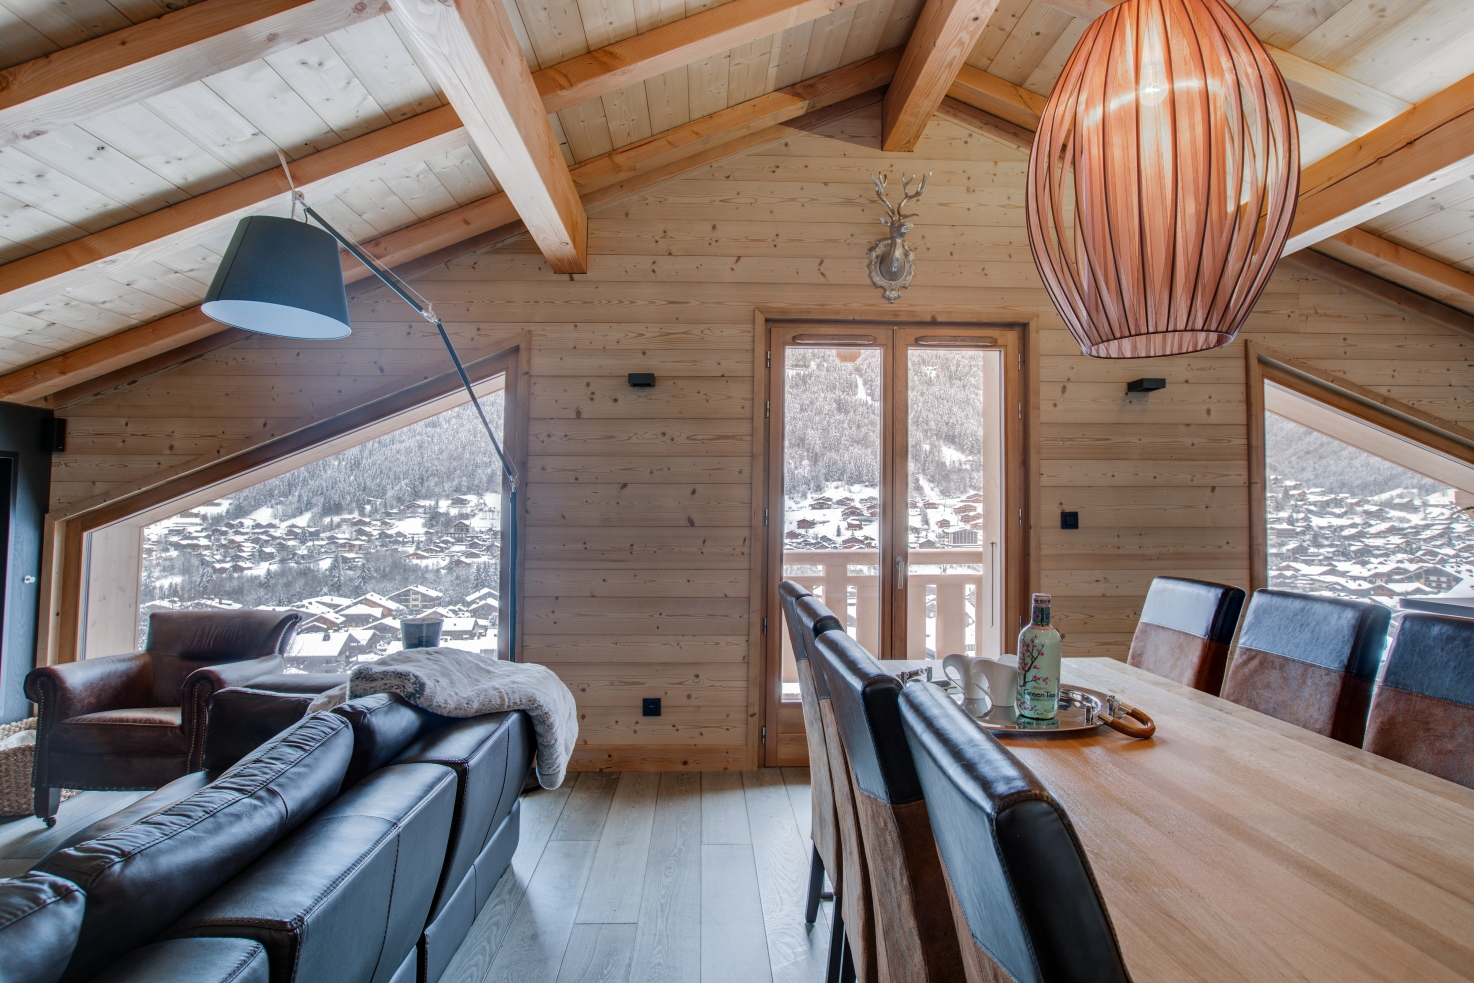 Altaka 2 living area luxury self catered apartment morzine